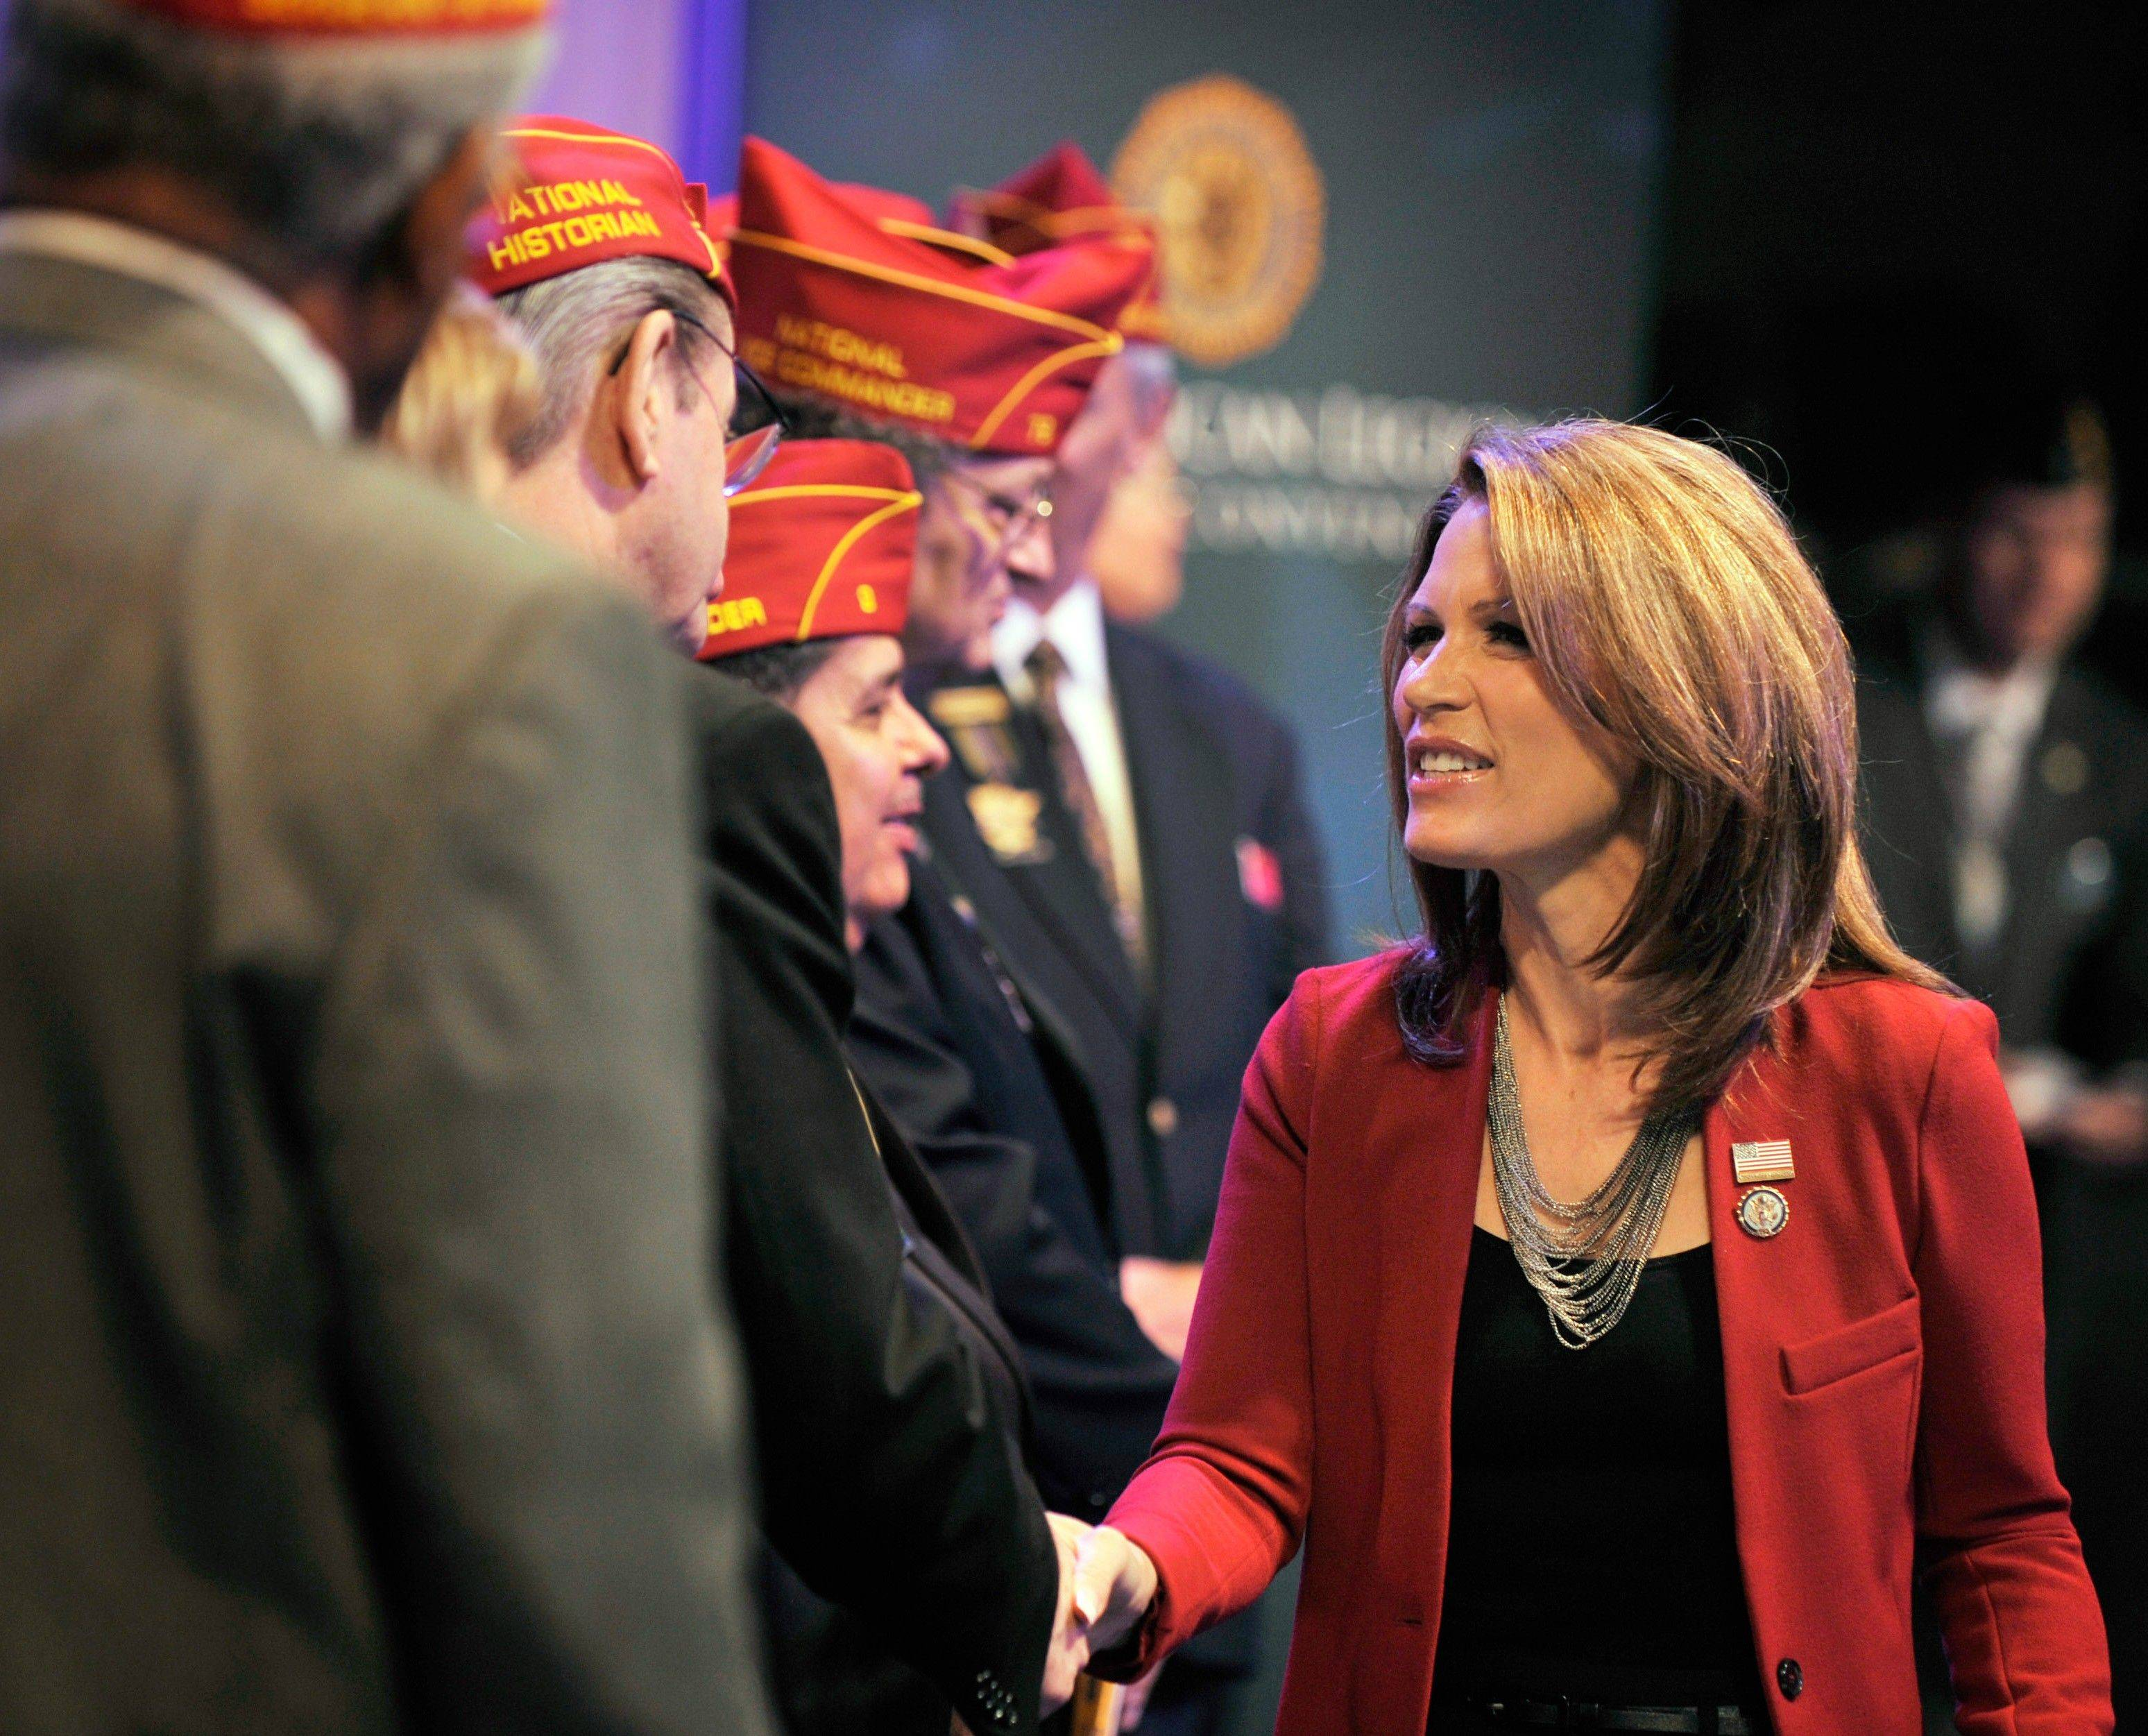 Republican presidential candidate Michele Bachmann greets American Legion officers on stage Thursday after addressing the national convention in Minneapolis.